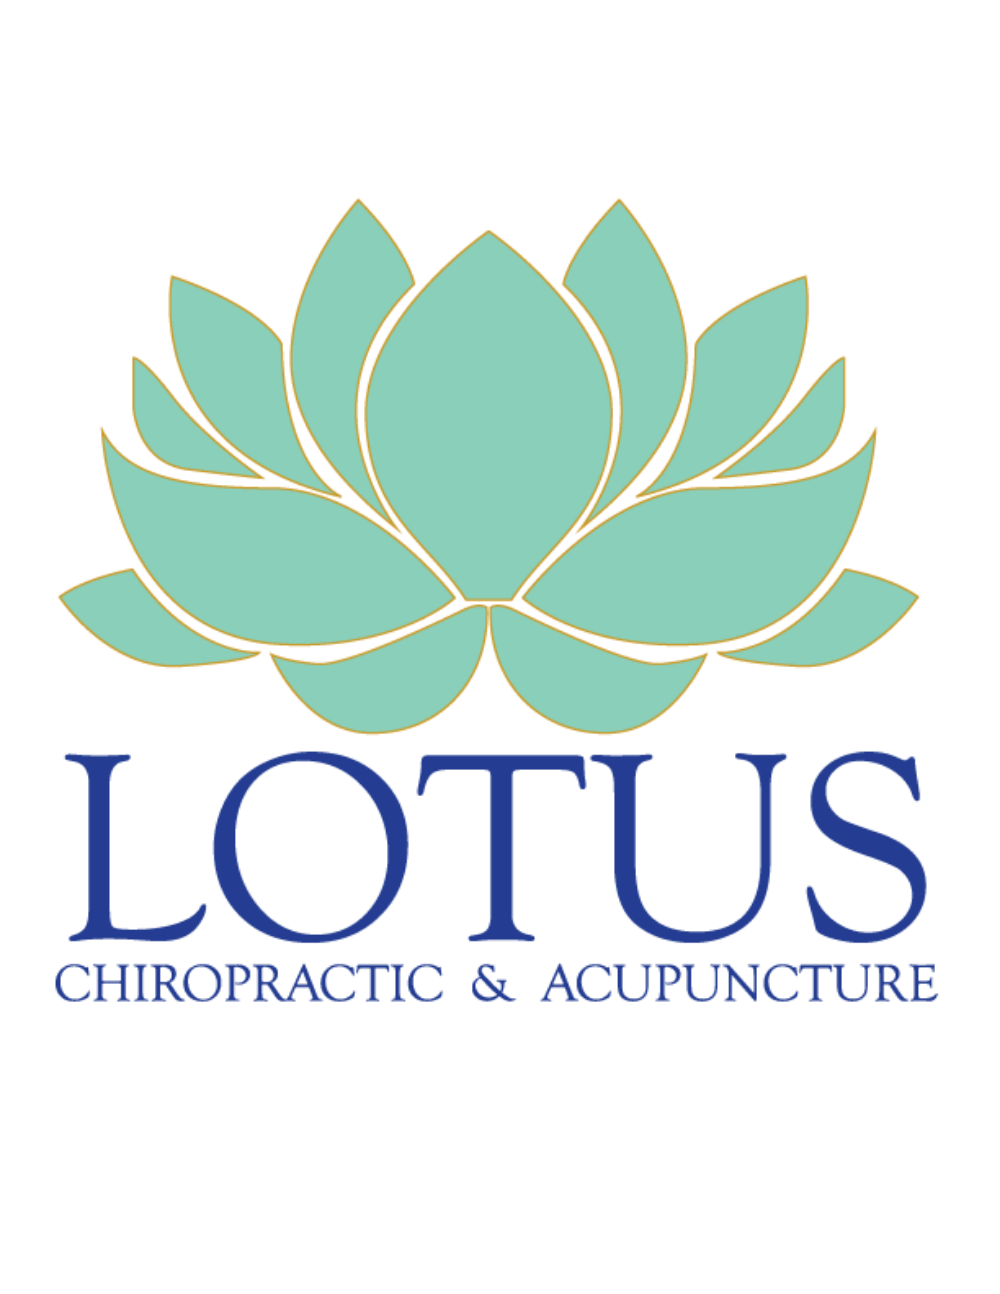 lotus-chiropractic-and-acupuncture-logo